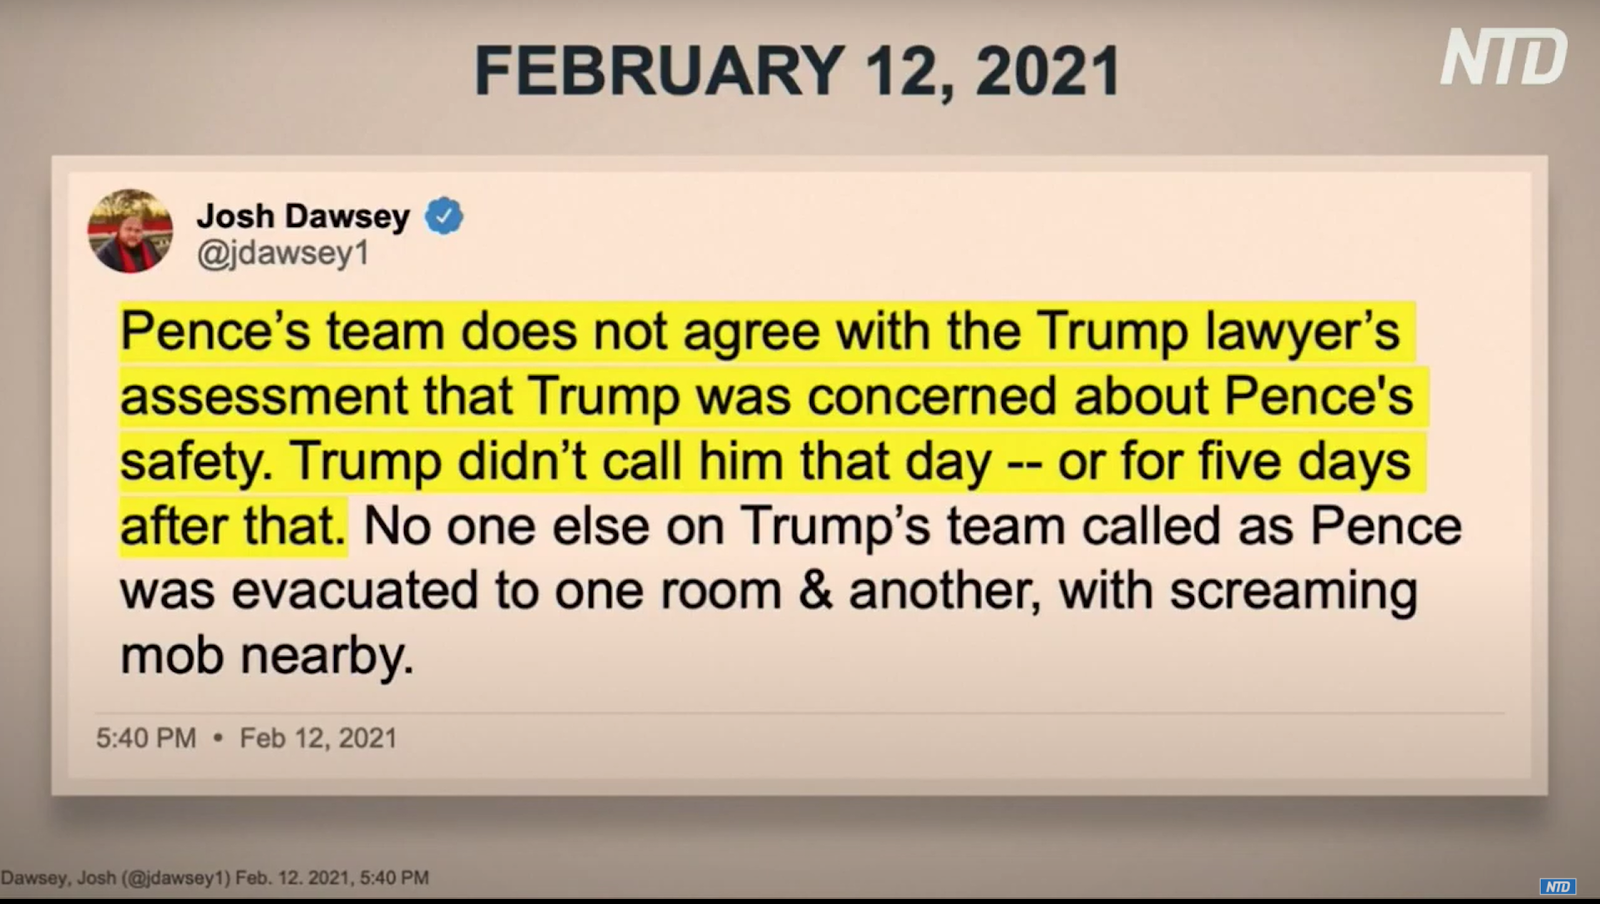 Screenshot of House Manager David Cicilline (D-RI)'s closing arguments. Cicilline attempted to cite a tweet composed of hearsay by Josh Dawsey, a Washington Post reporter, which claimed Mike Pence's team was in disagreement with a statement made by the Defense the prior day that Trump was concerned about the Vice President's safety during the riot. The Defense was not allowed to object.